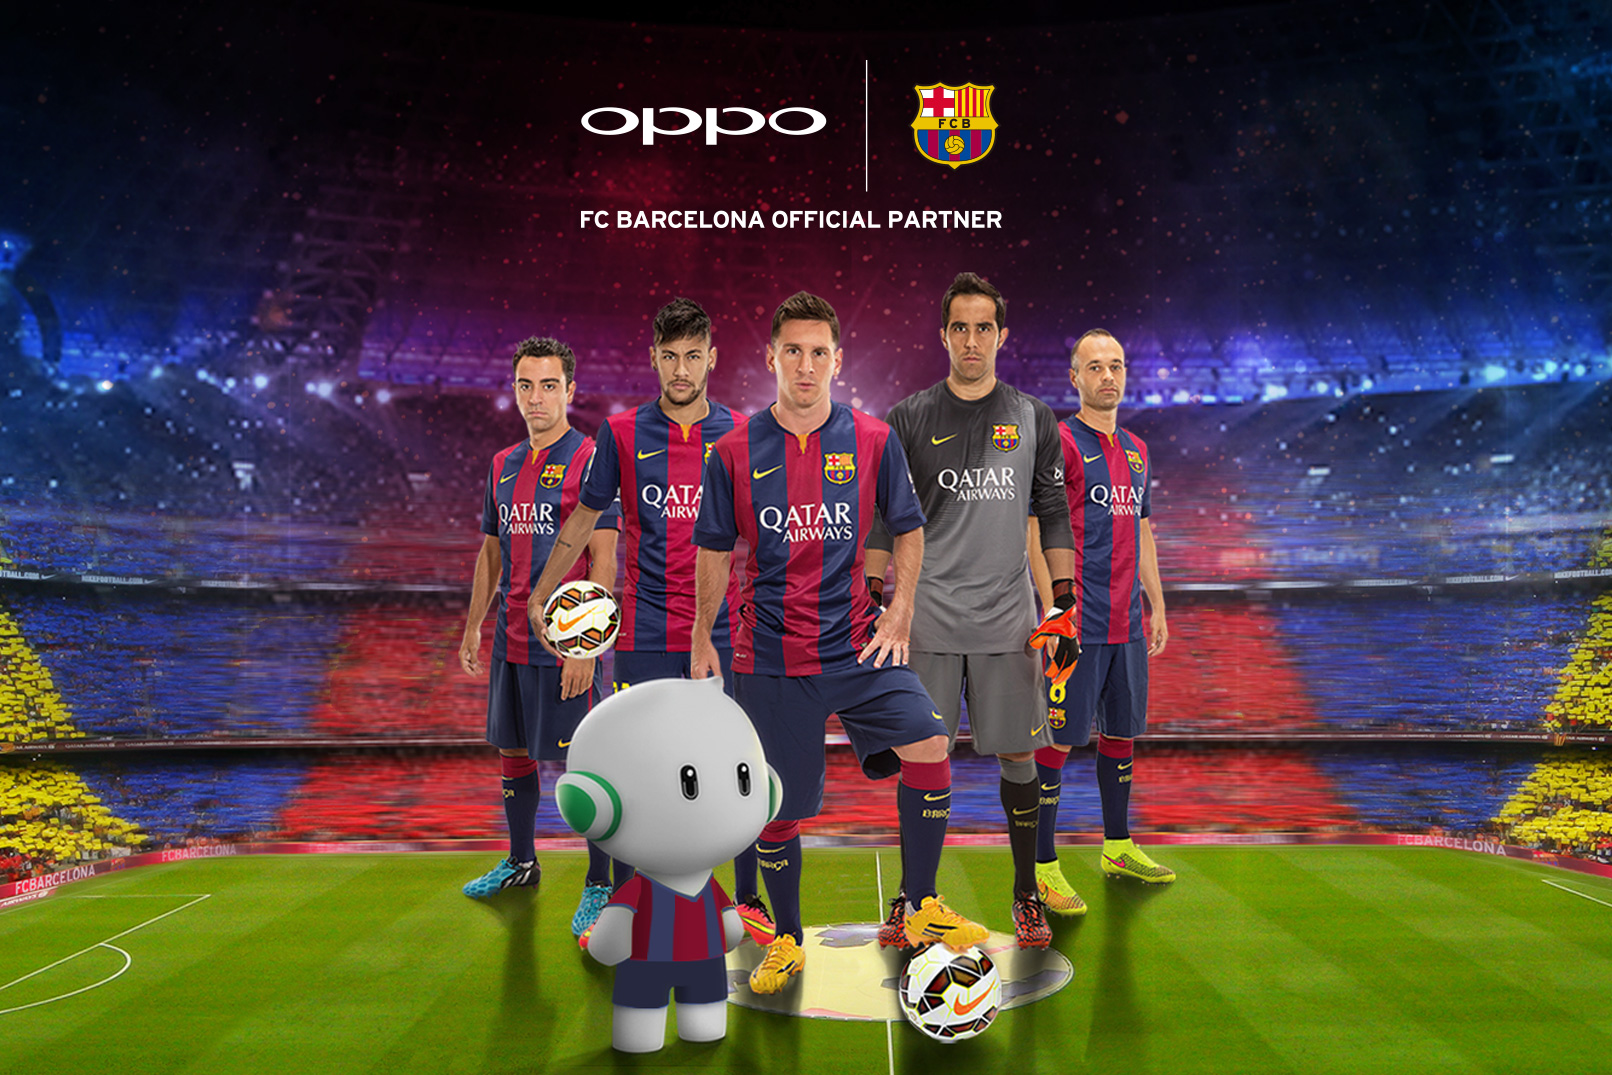 FC-Barcelona-and-Oppo-partnership_2